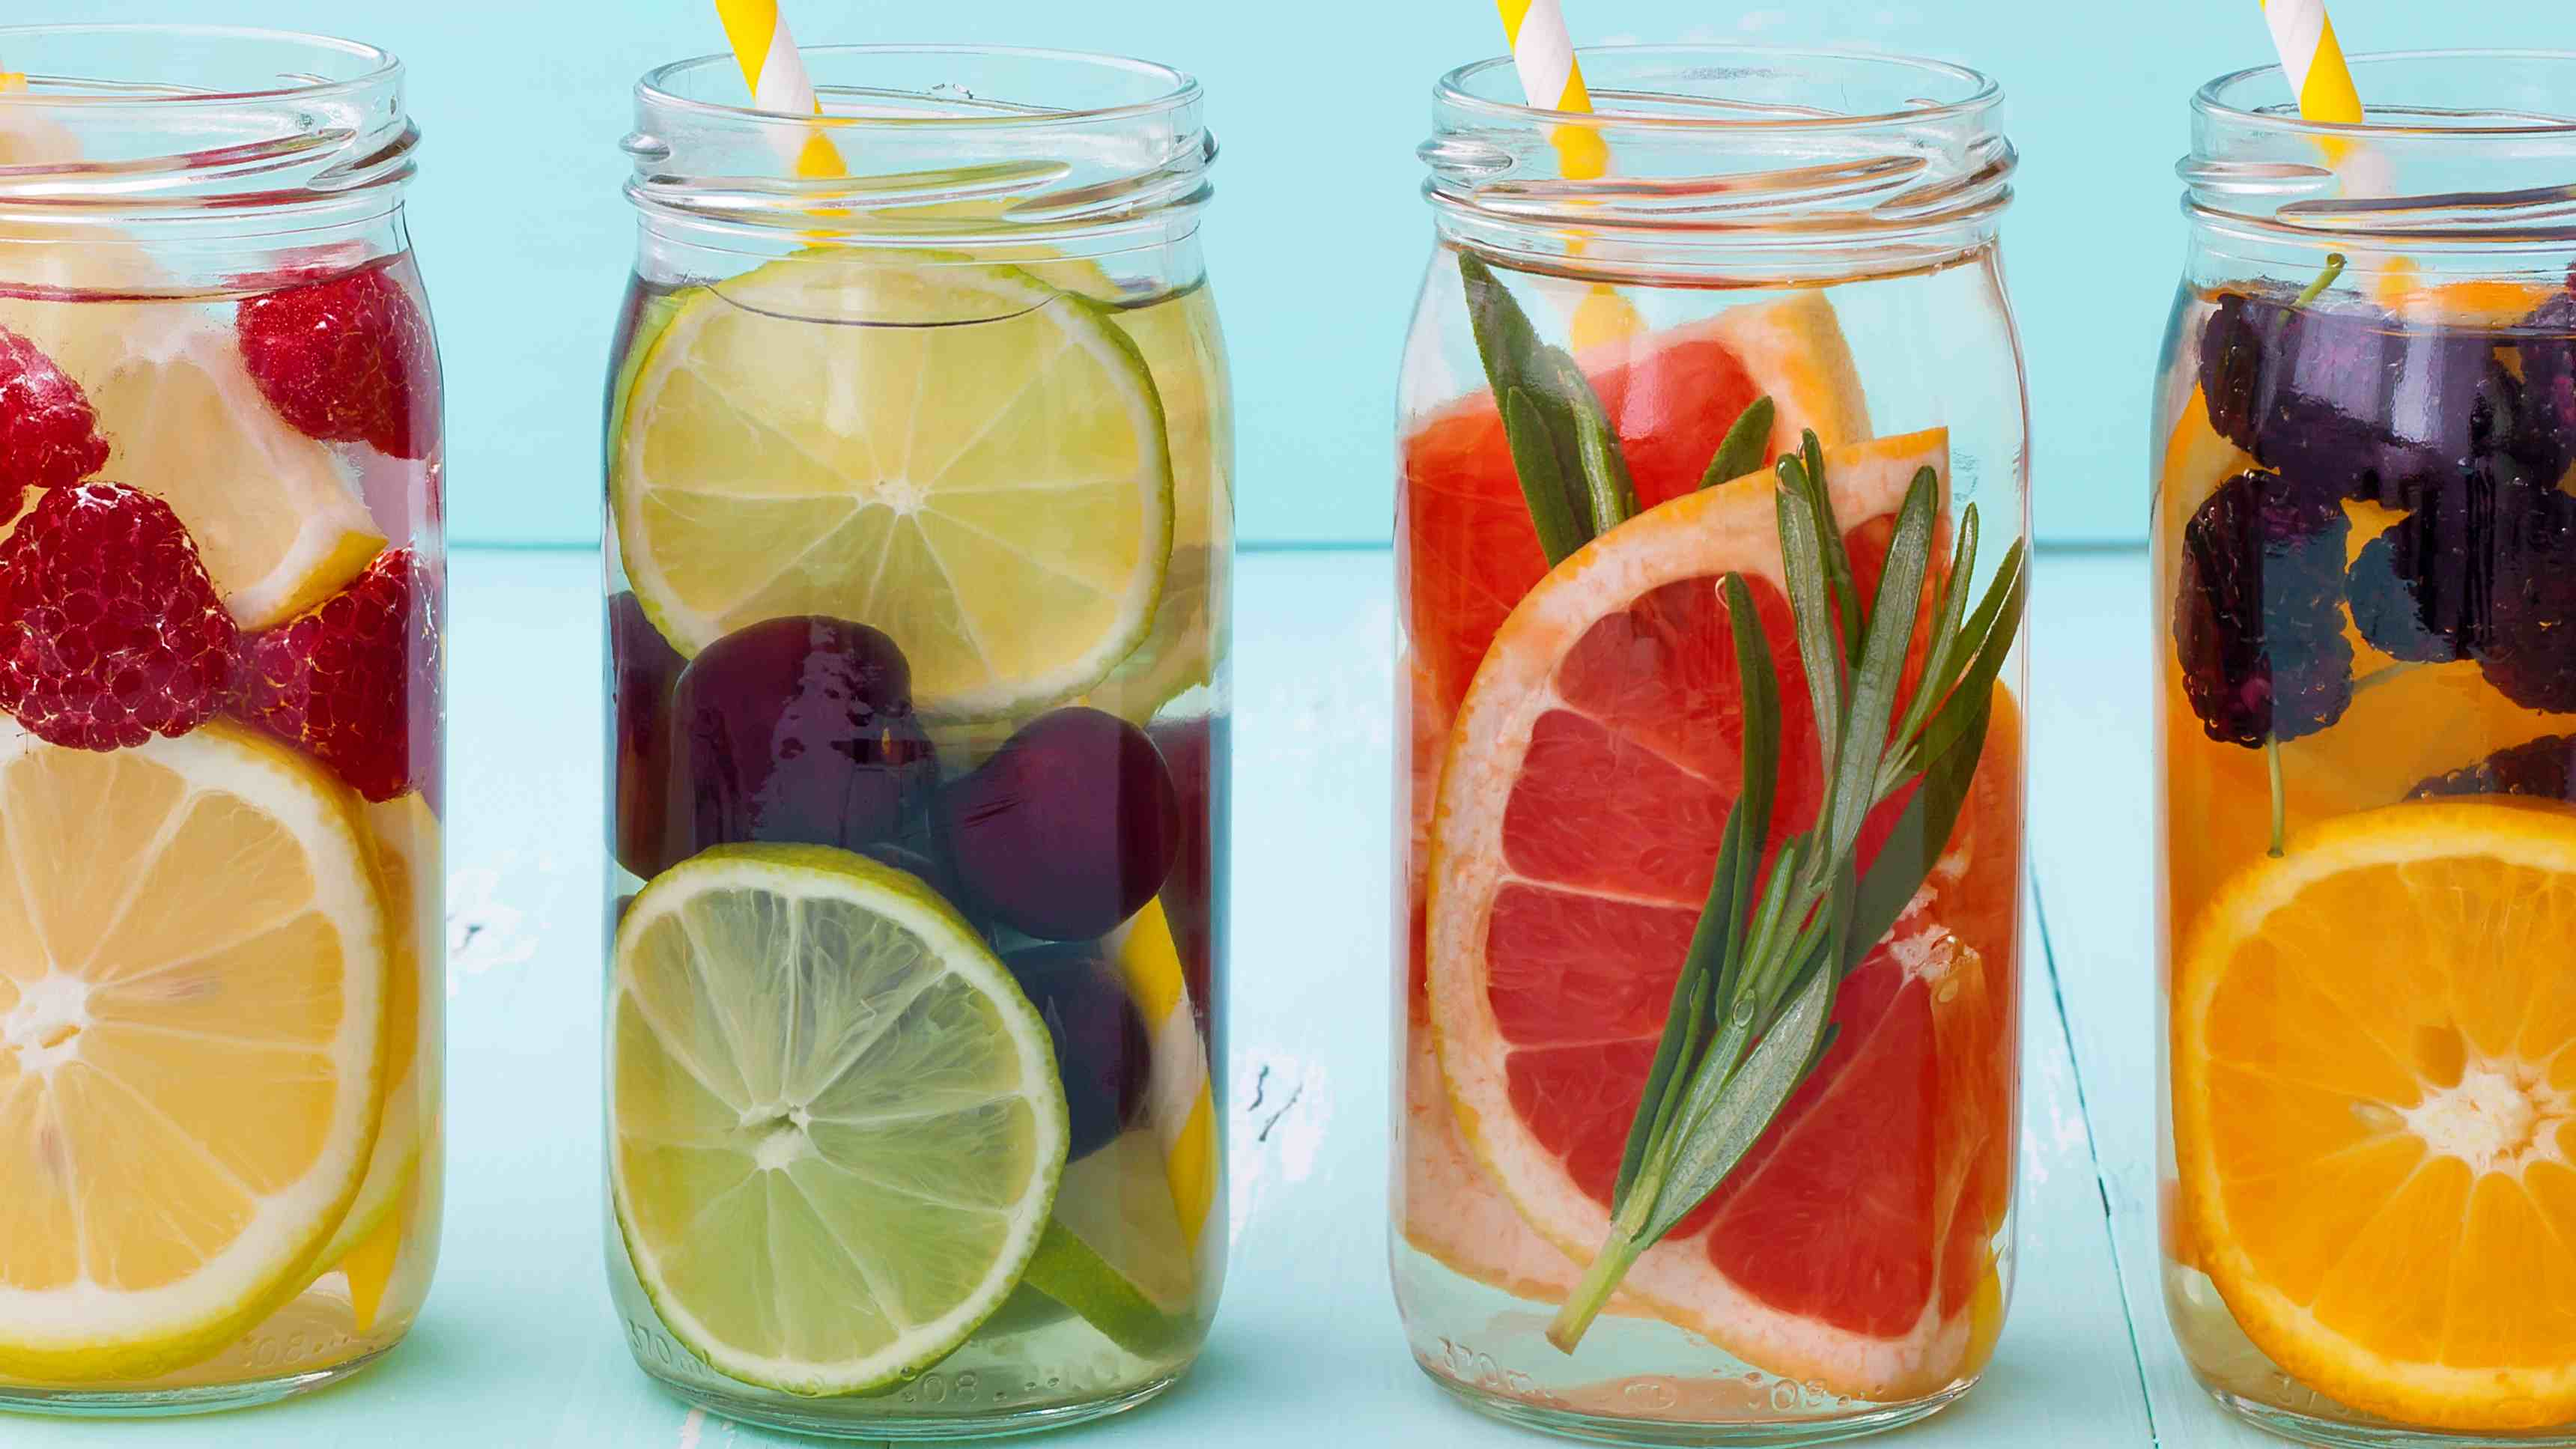 Refresh with naturally flavoured water